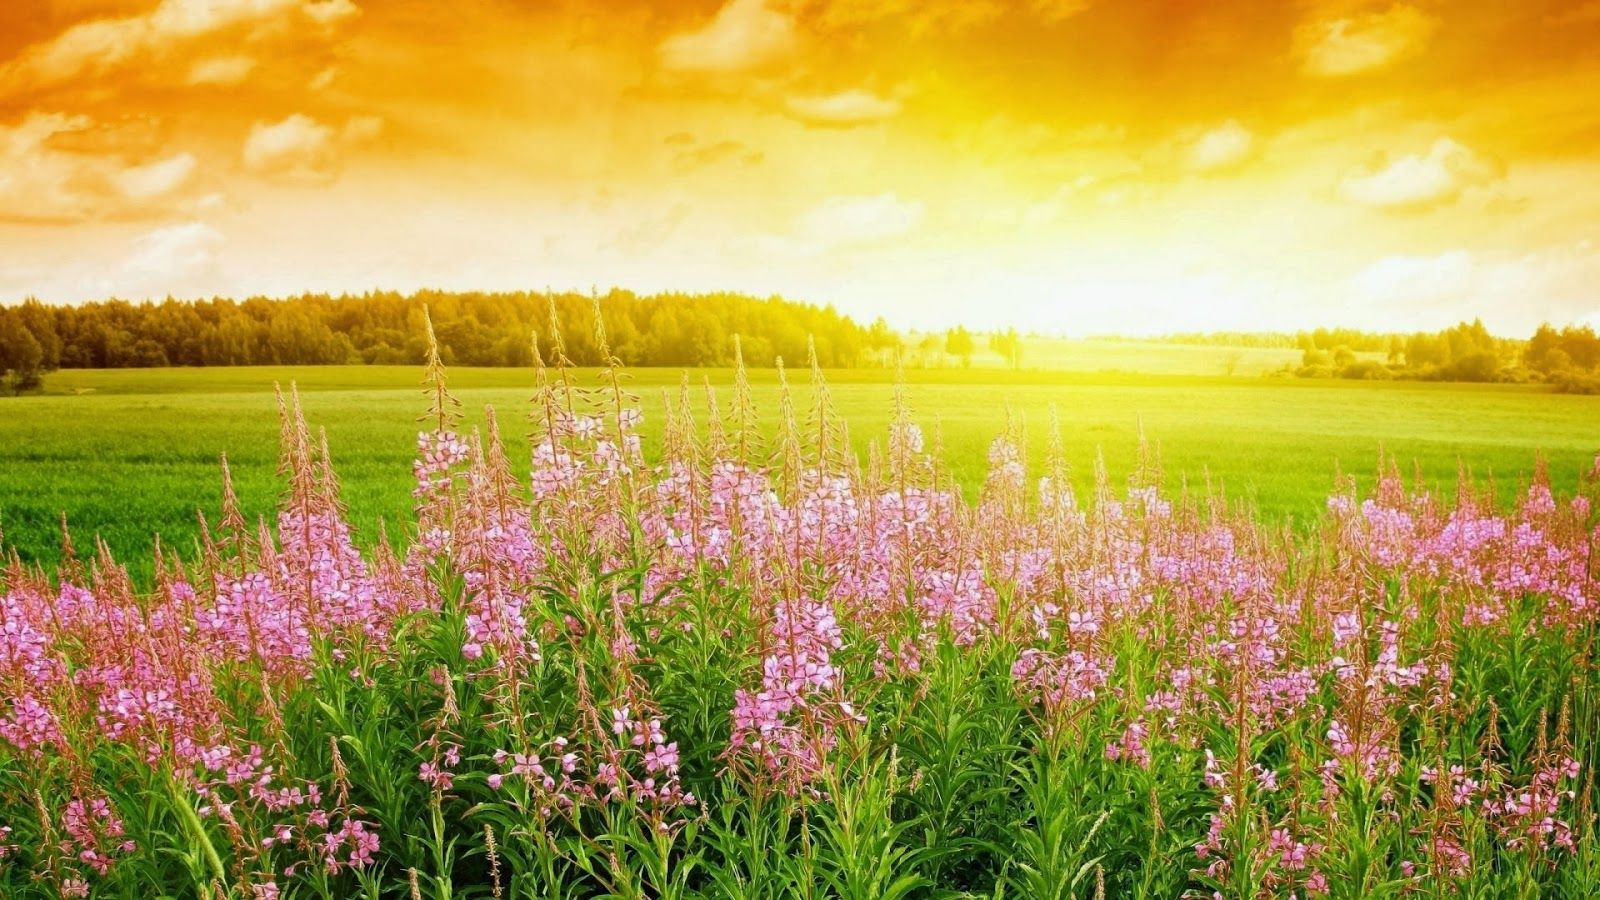 nature hd wallpapers for laptop x free download HD | HD Wallpapers ...